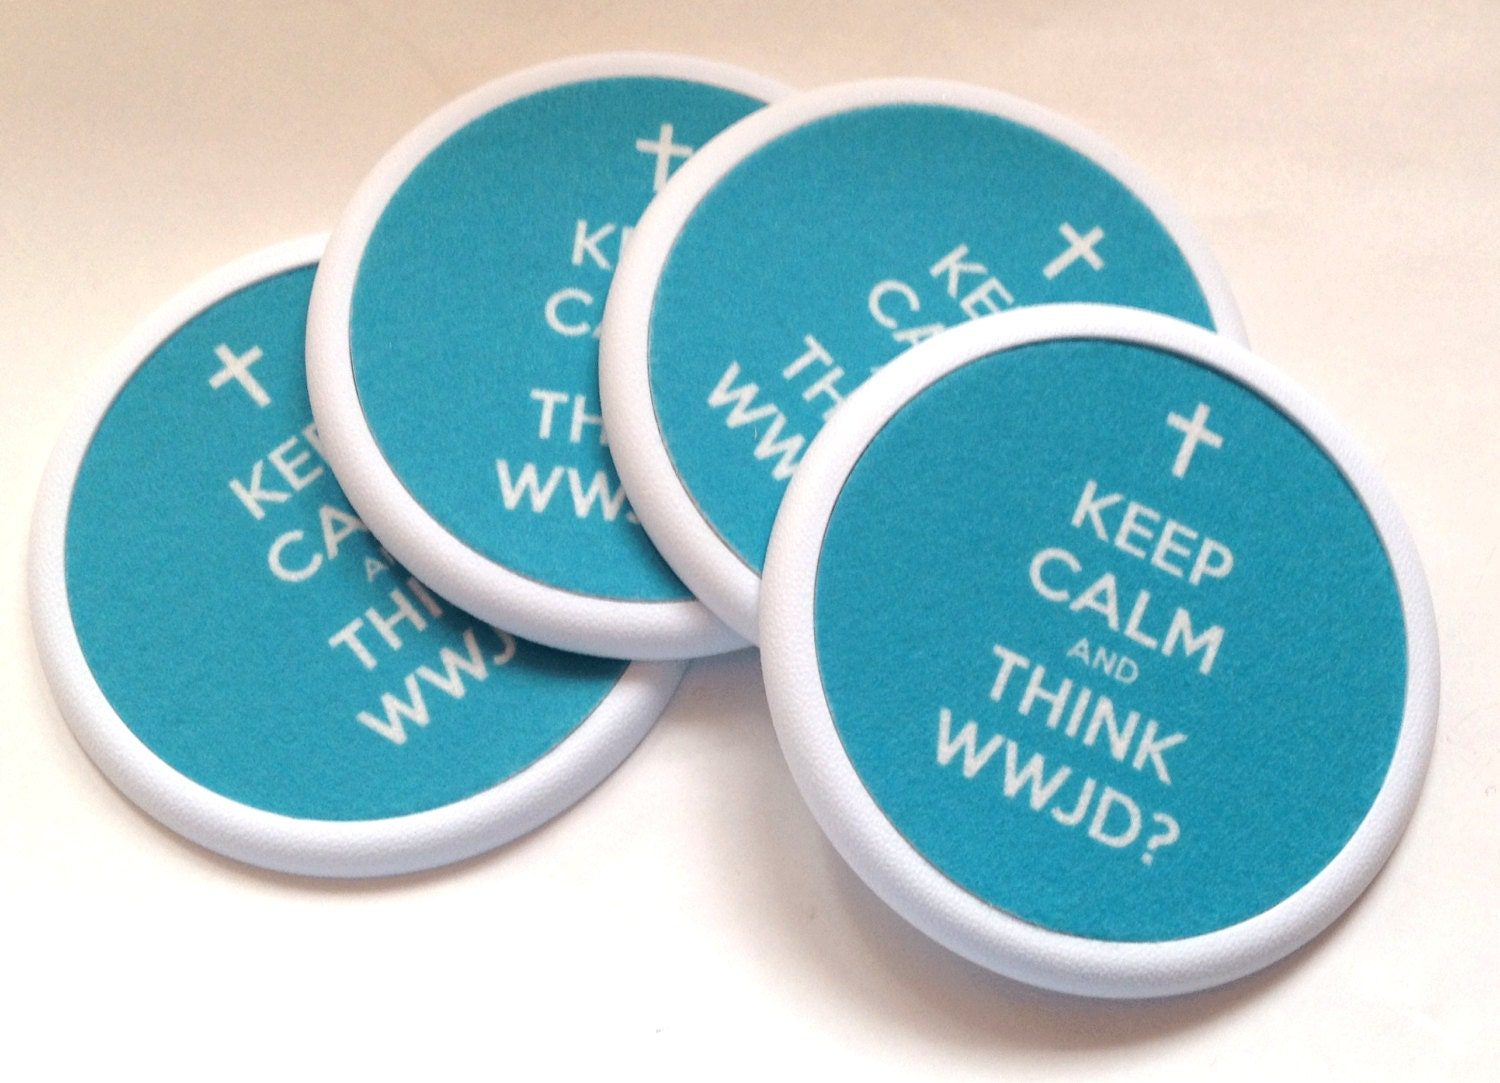 Absorbent drink coaster keep calm and think by spreadblessings - Drink coasters absorbent ...